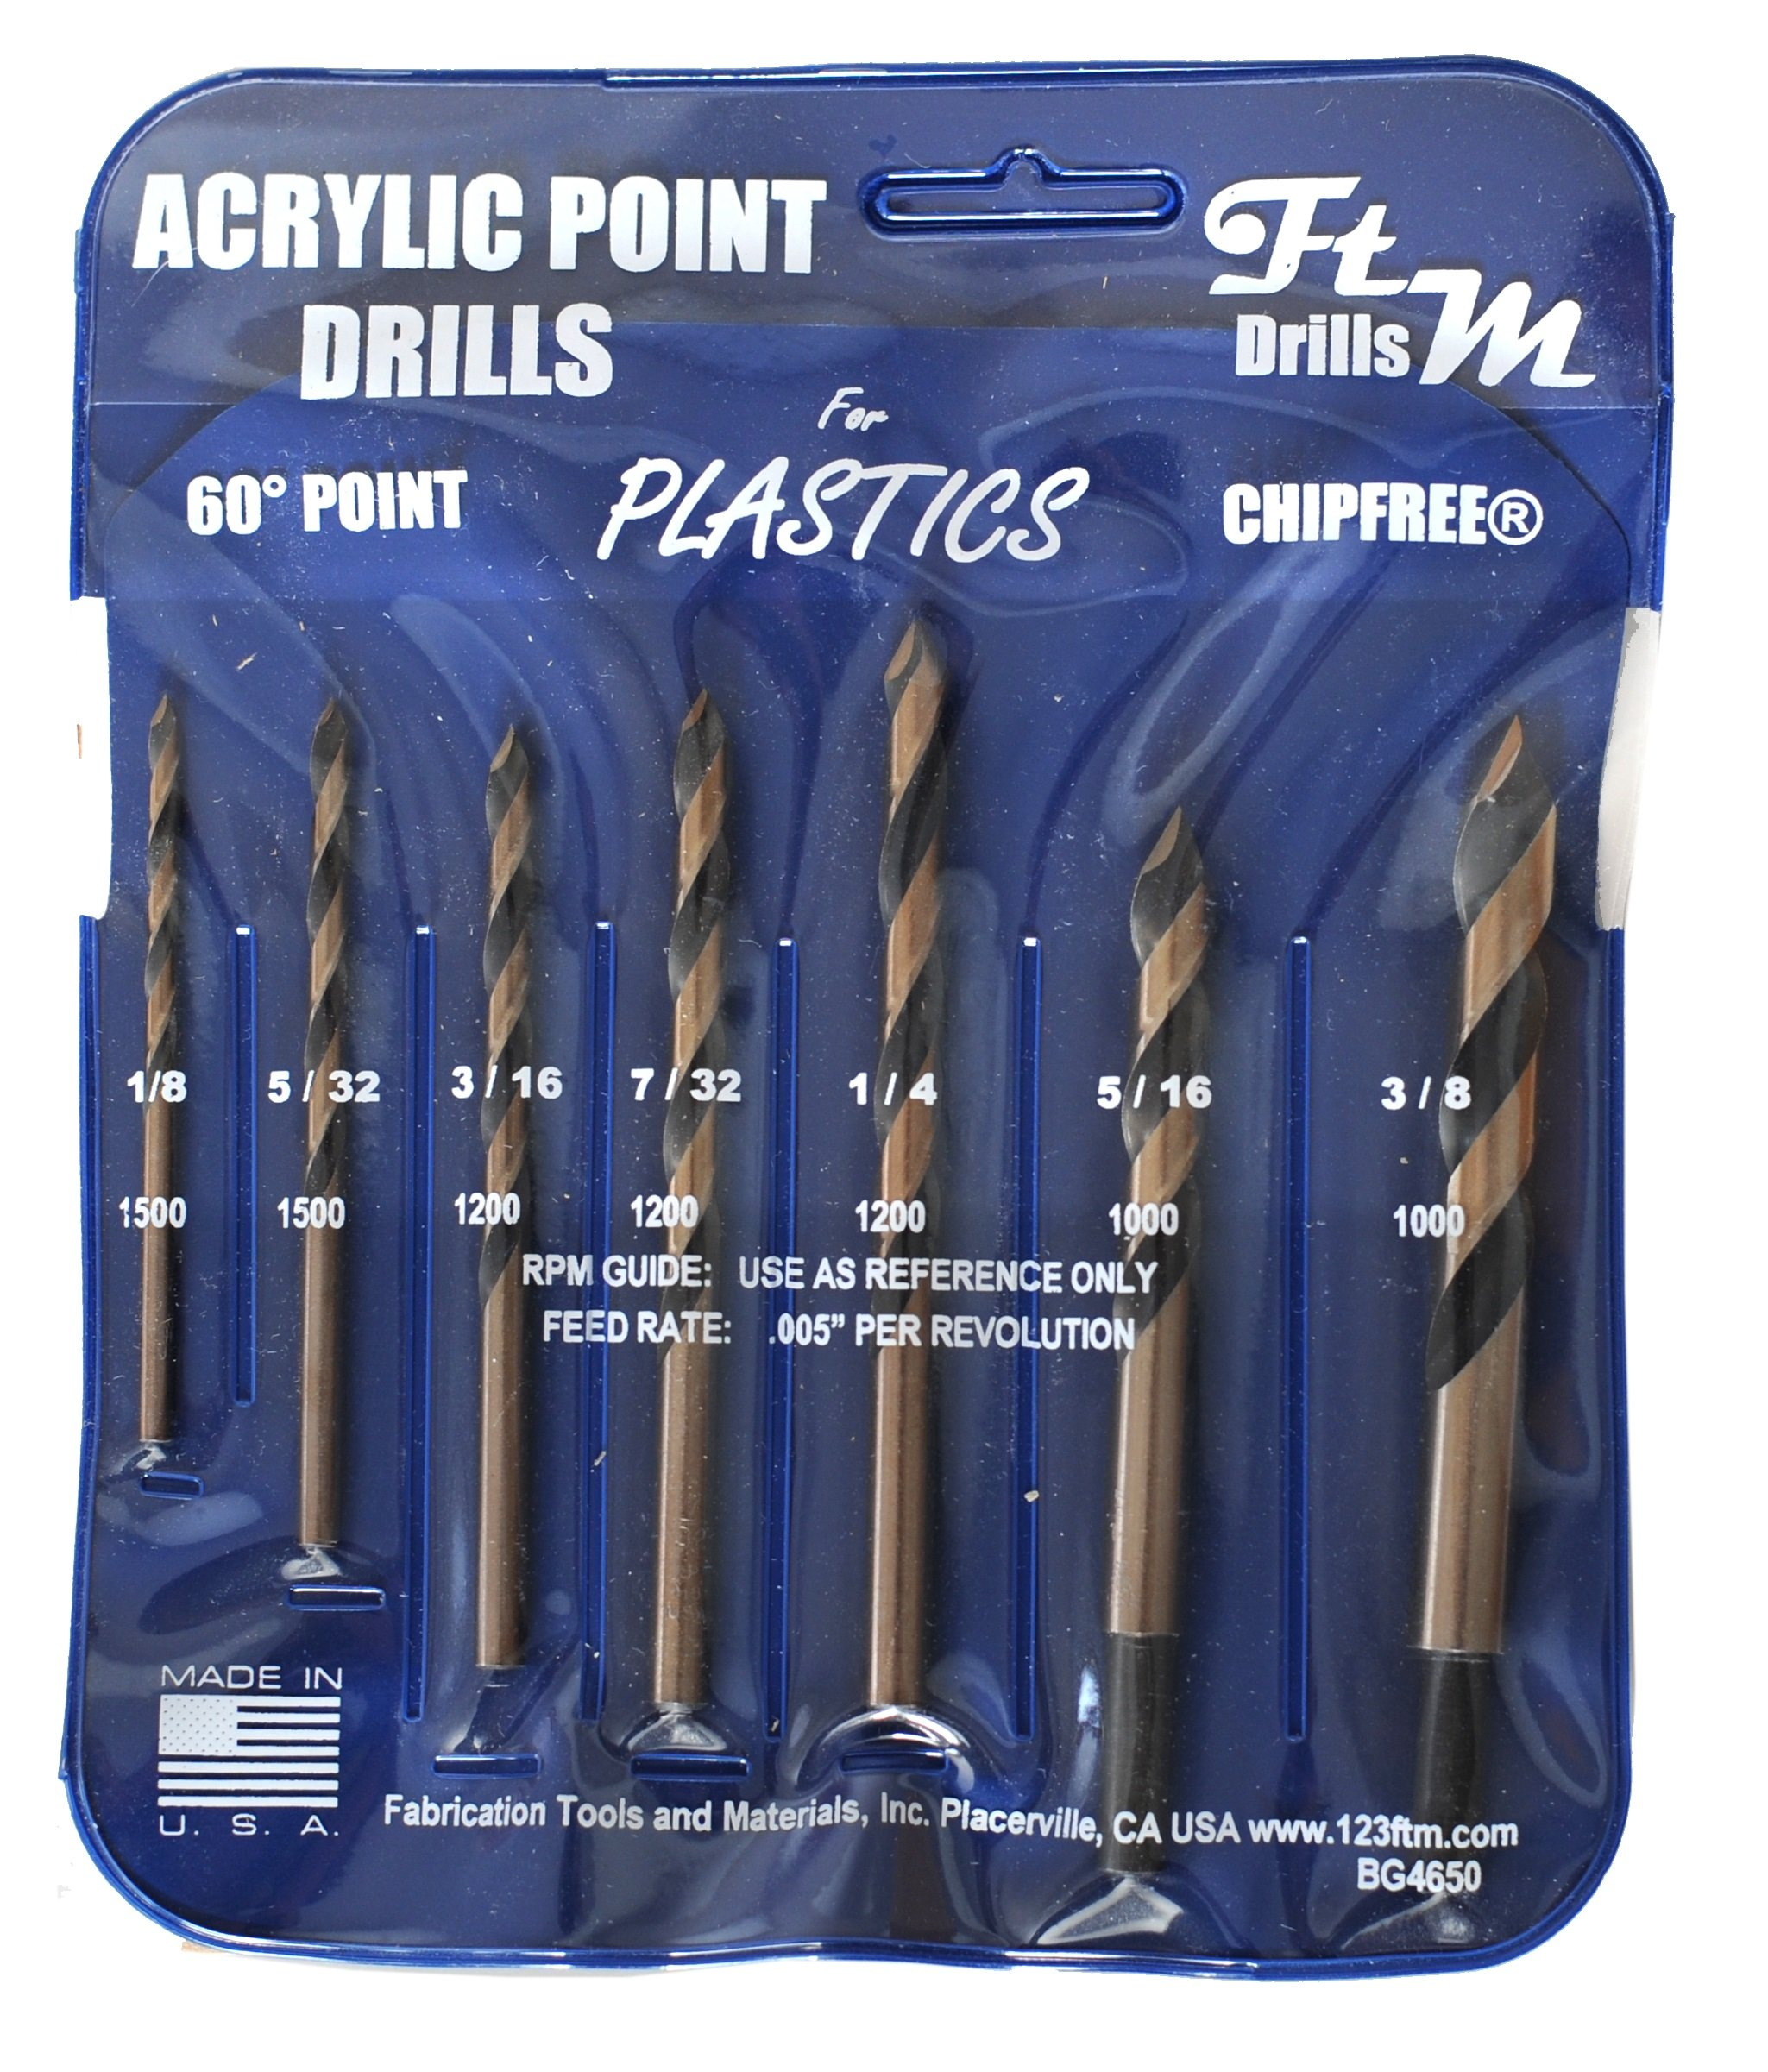 Drill Bits for Plastic (acrylic, plexiglass, ABS, lexan, polycarbonate, pvc) Norseman 7pc Acrylic Point Drill Set in Vinyl Pouch. Includes 1/8'', 5/32'', 3/16'', 7/32'' 1/4'', 5/16'', and 3/8'' Part BG4650A by FTM, Inc.